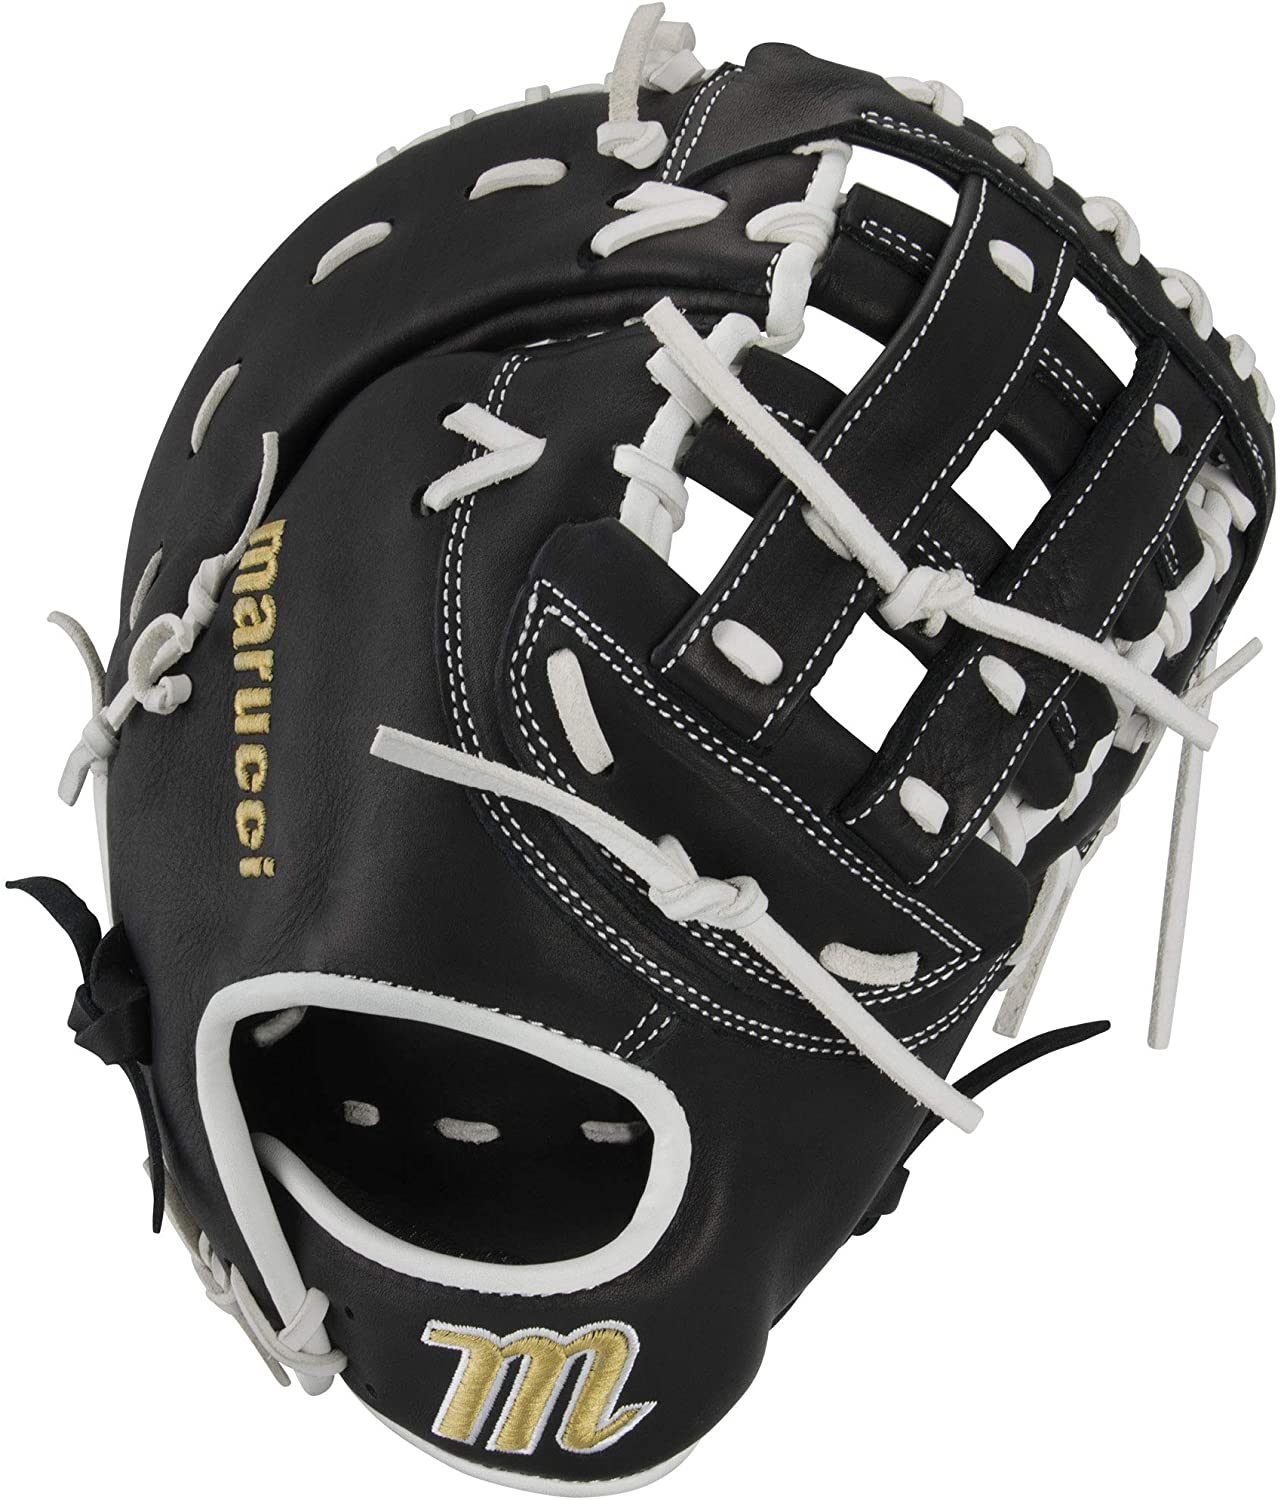 marucci-palmetto-series-fastpitch-softball-glove-13-right-hand-throw MFGPL3FP-BKW-RightHandThrow Marucci  Soft-tumbled cowhide shell increases durability while reducing weight Cushioned leather finger